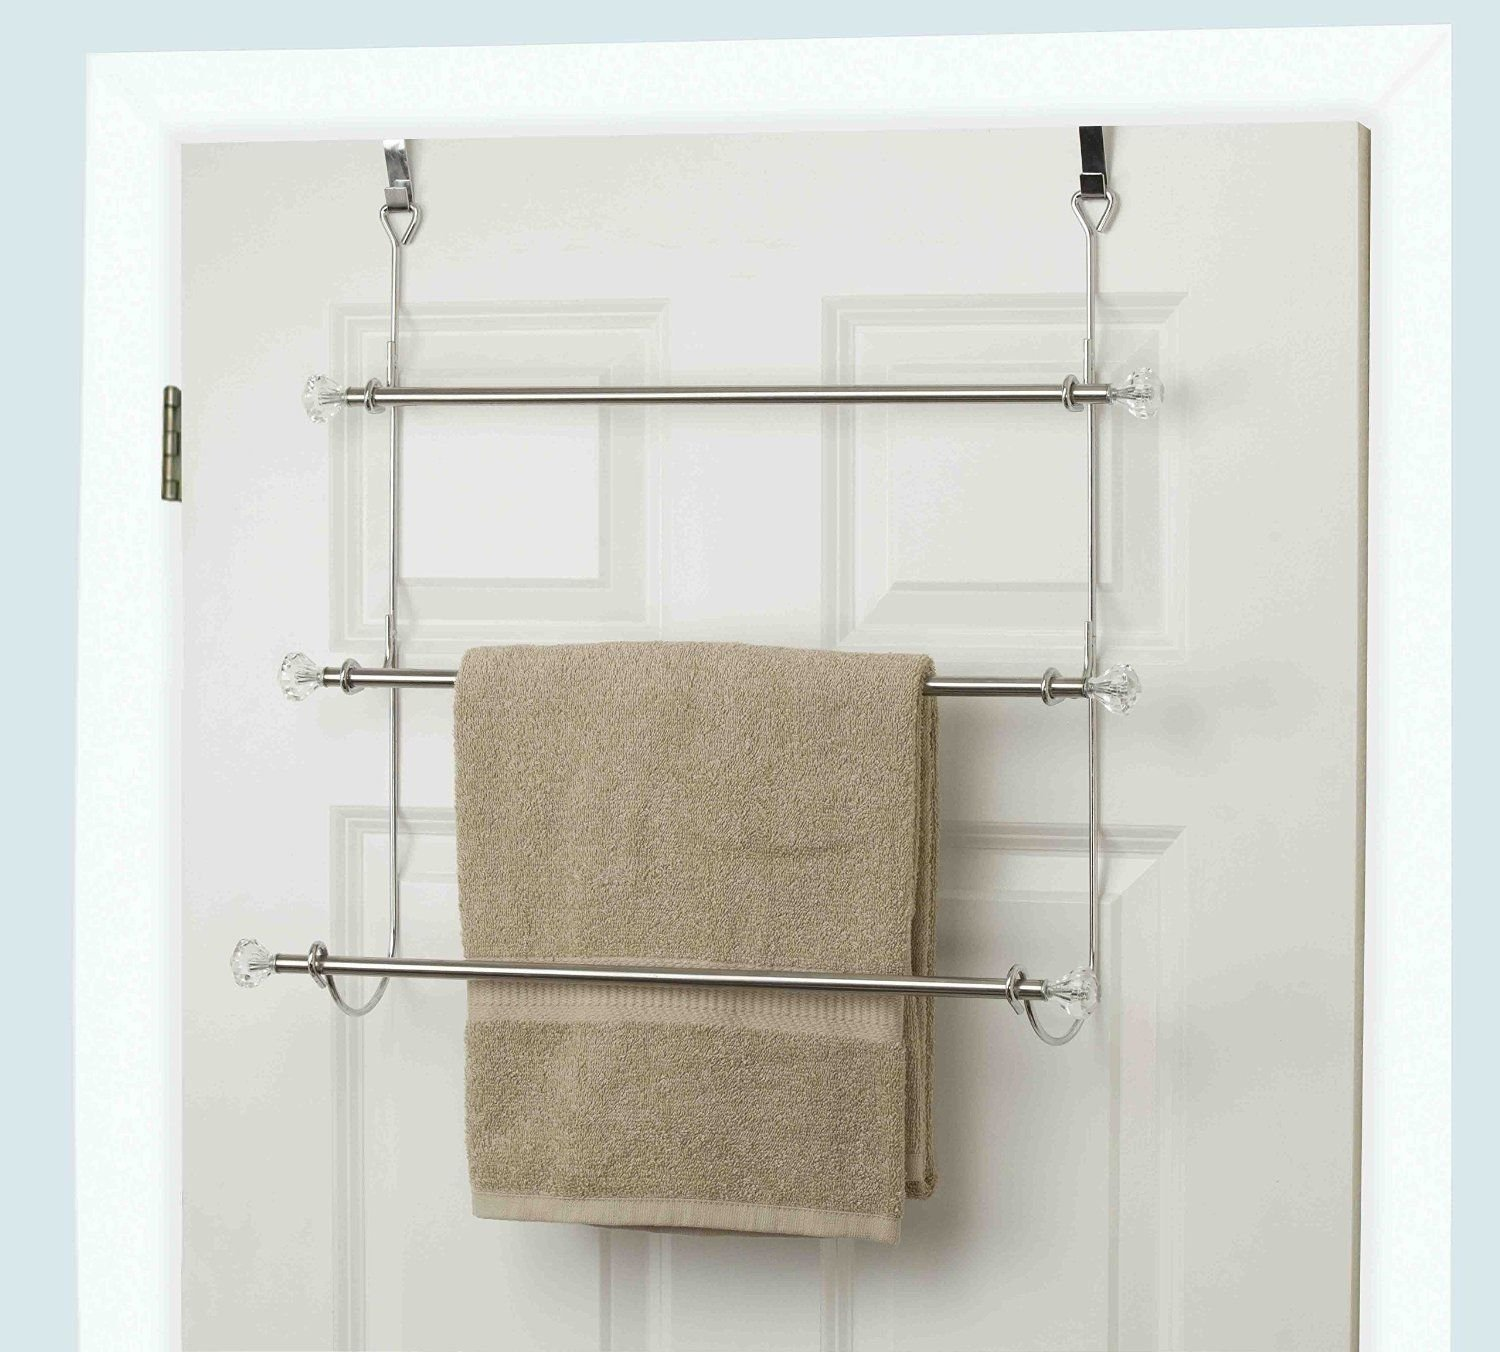 Chic-Product Heavy Duty Silver Chrome OTD 3 Tier Over The Door Towel Rack Holder Fits Over Most Standard Doors